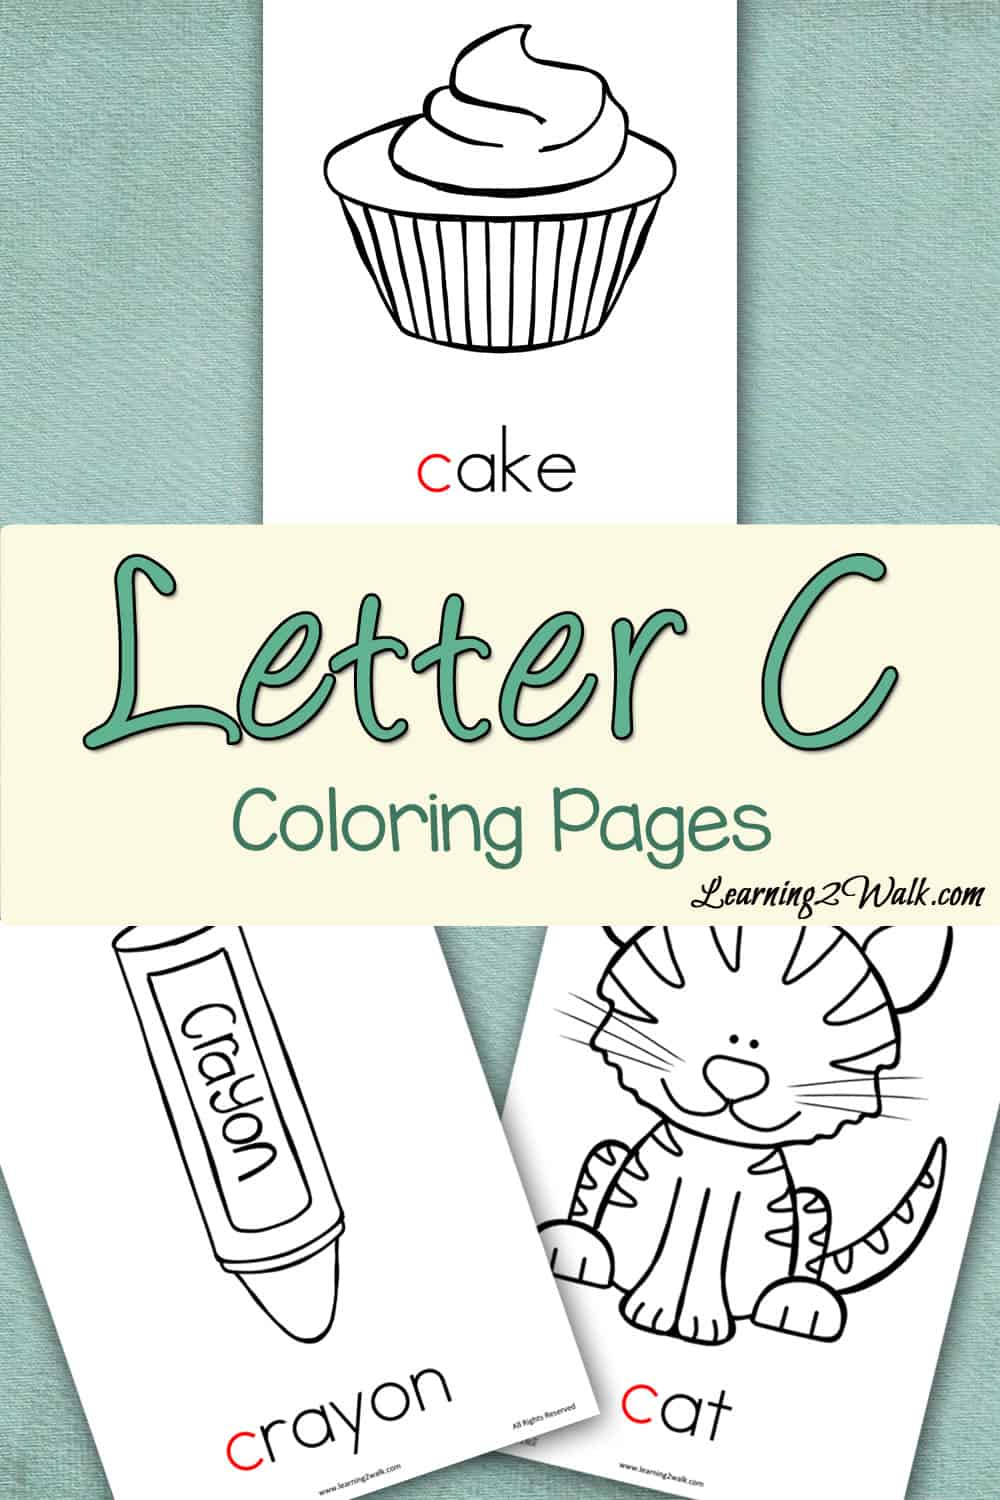 Working on the letter c with your preschooler and want some fun preschool letter activities to help? Try these free letter c coloring pages.